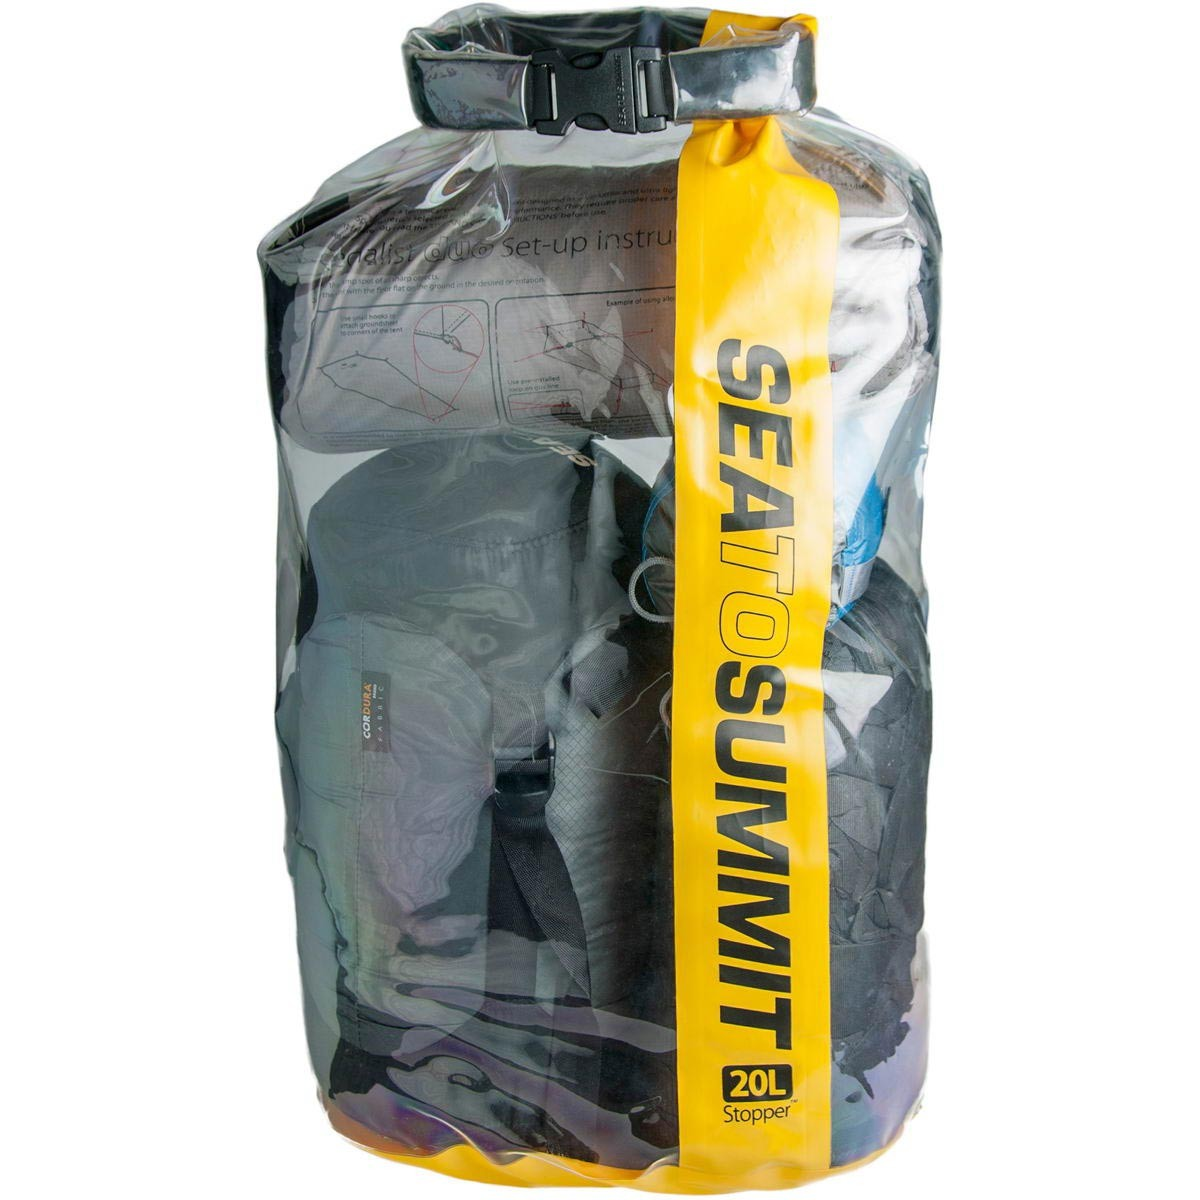 Sea To Summit Stopper Clear Dry Bag 20L Yellow